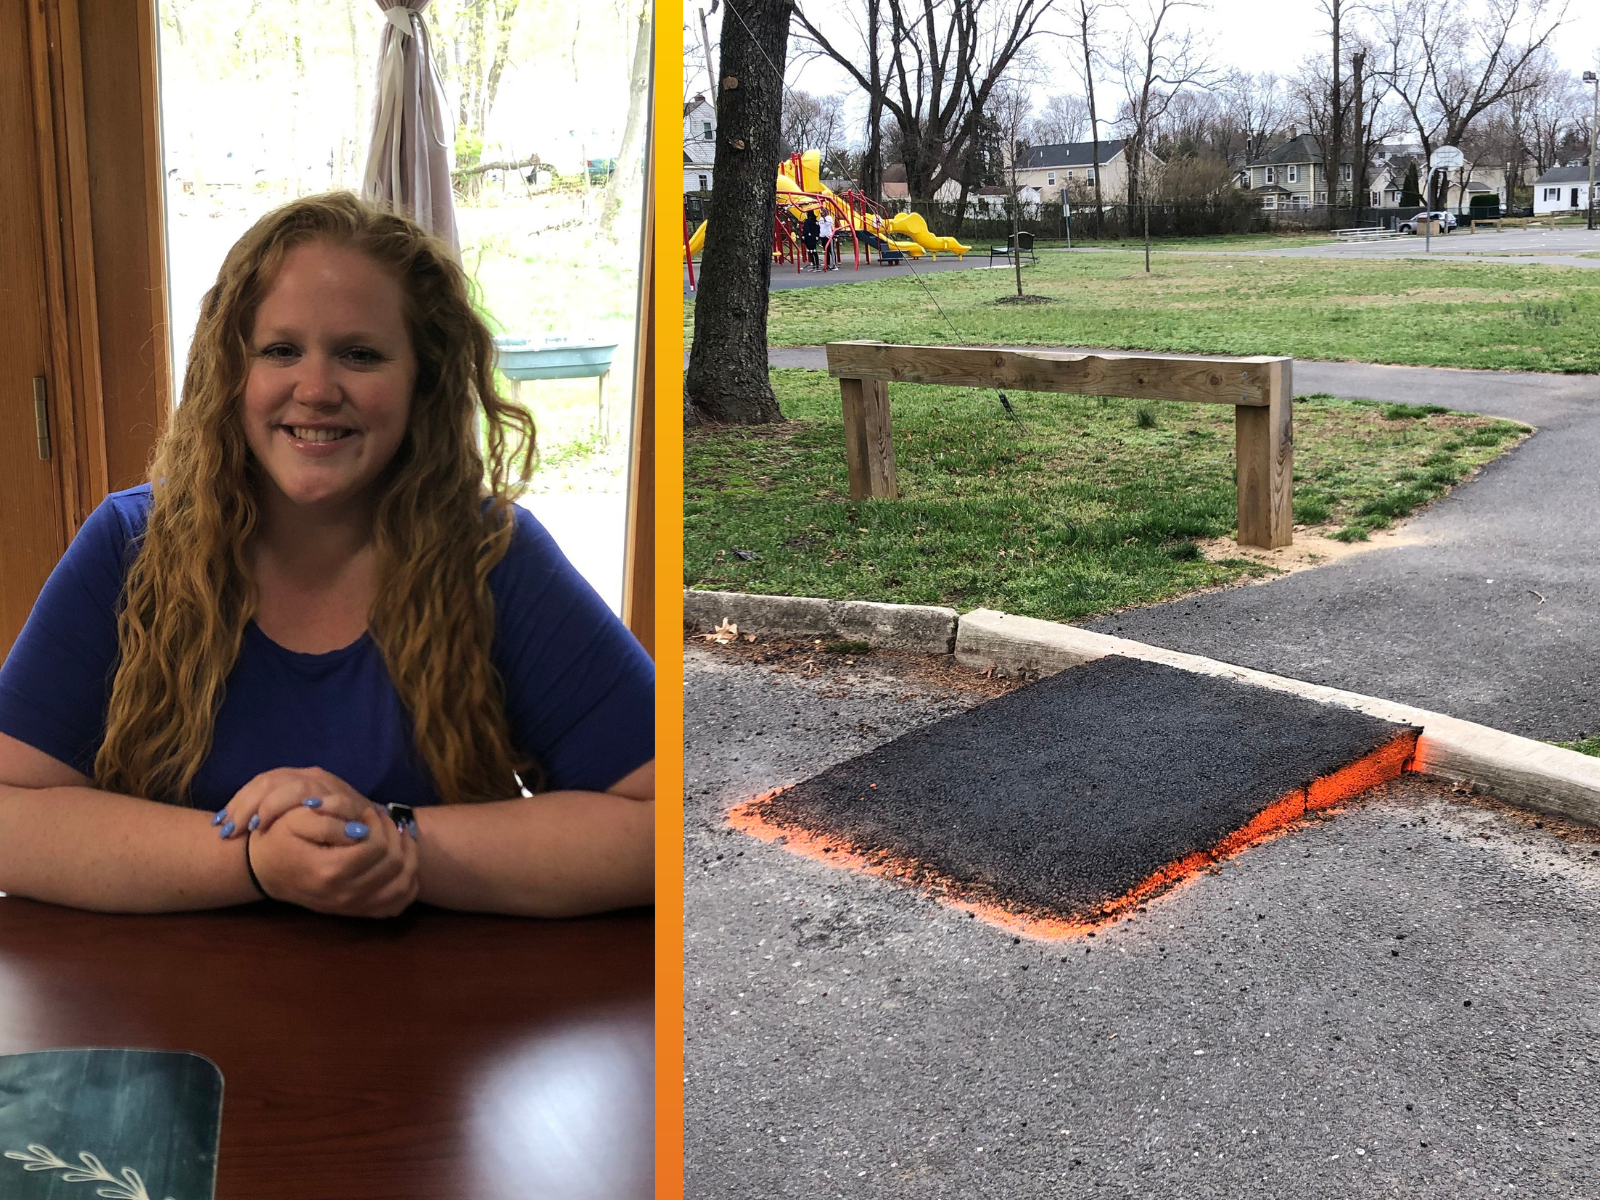 New ramp recently installed at the Hance Park entrance to provide access to those with disabilities.